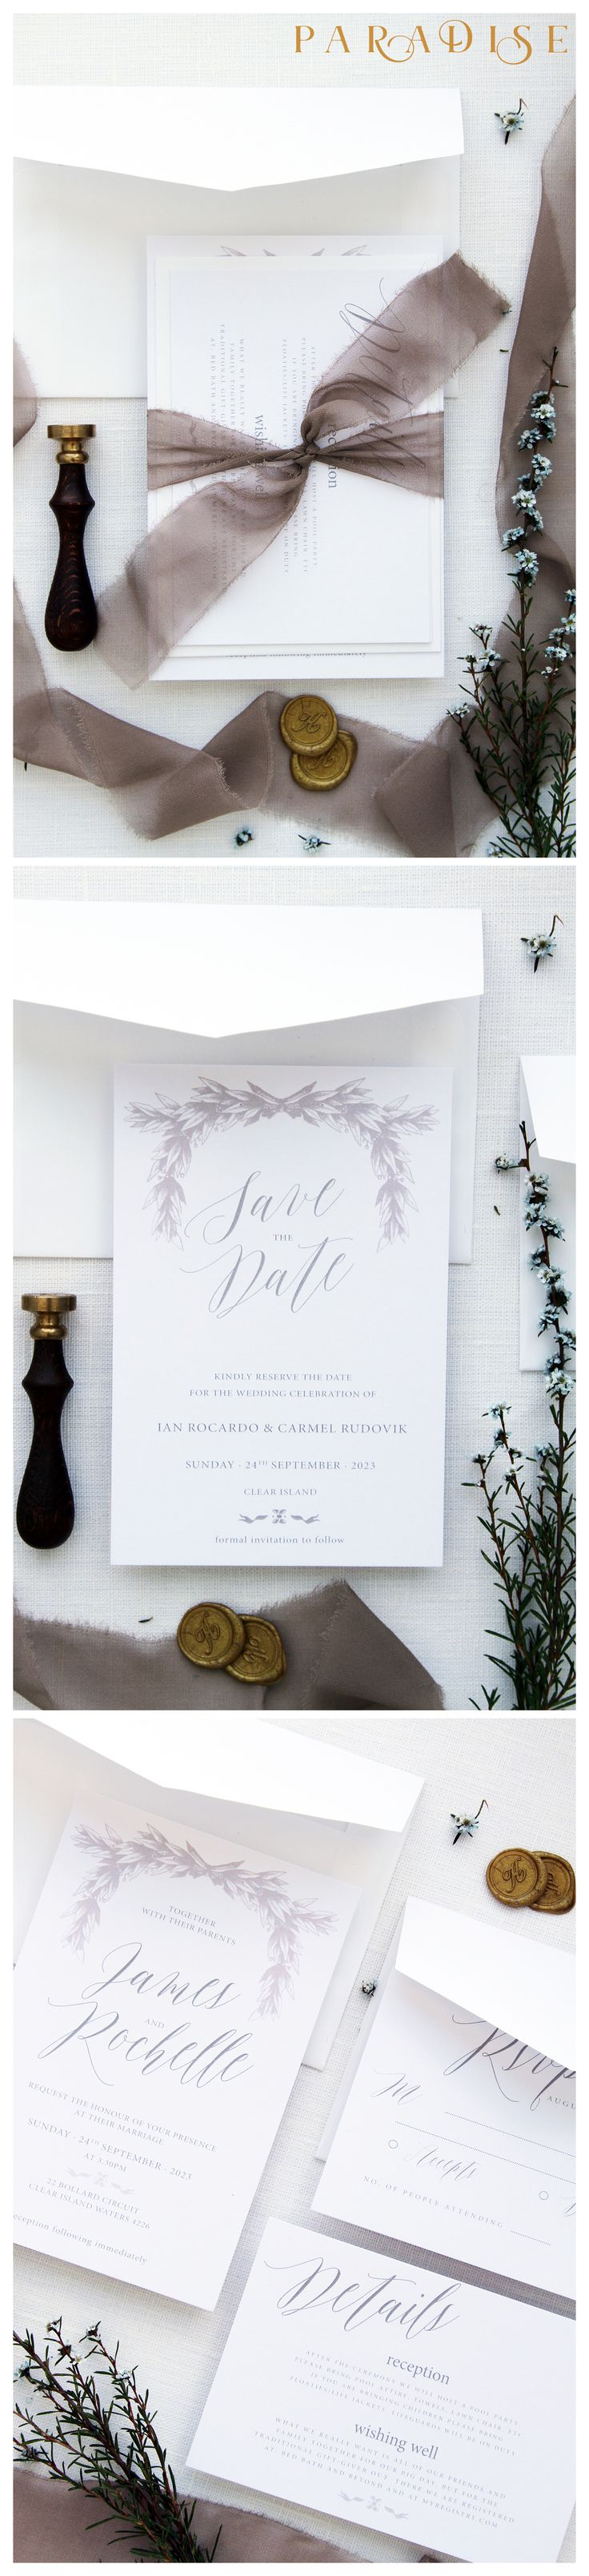 Rochelle Taupe 2 Wedding Invitation Sets Wreath